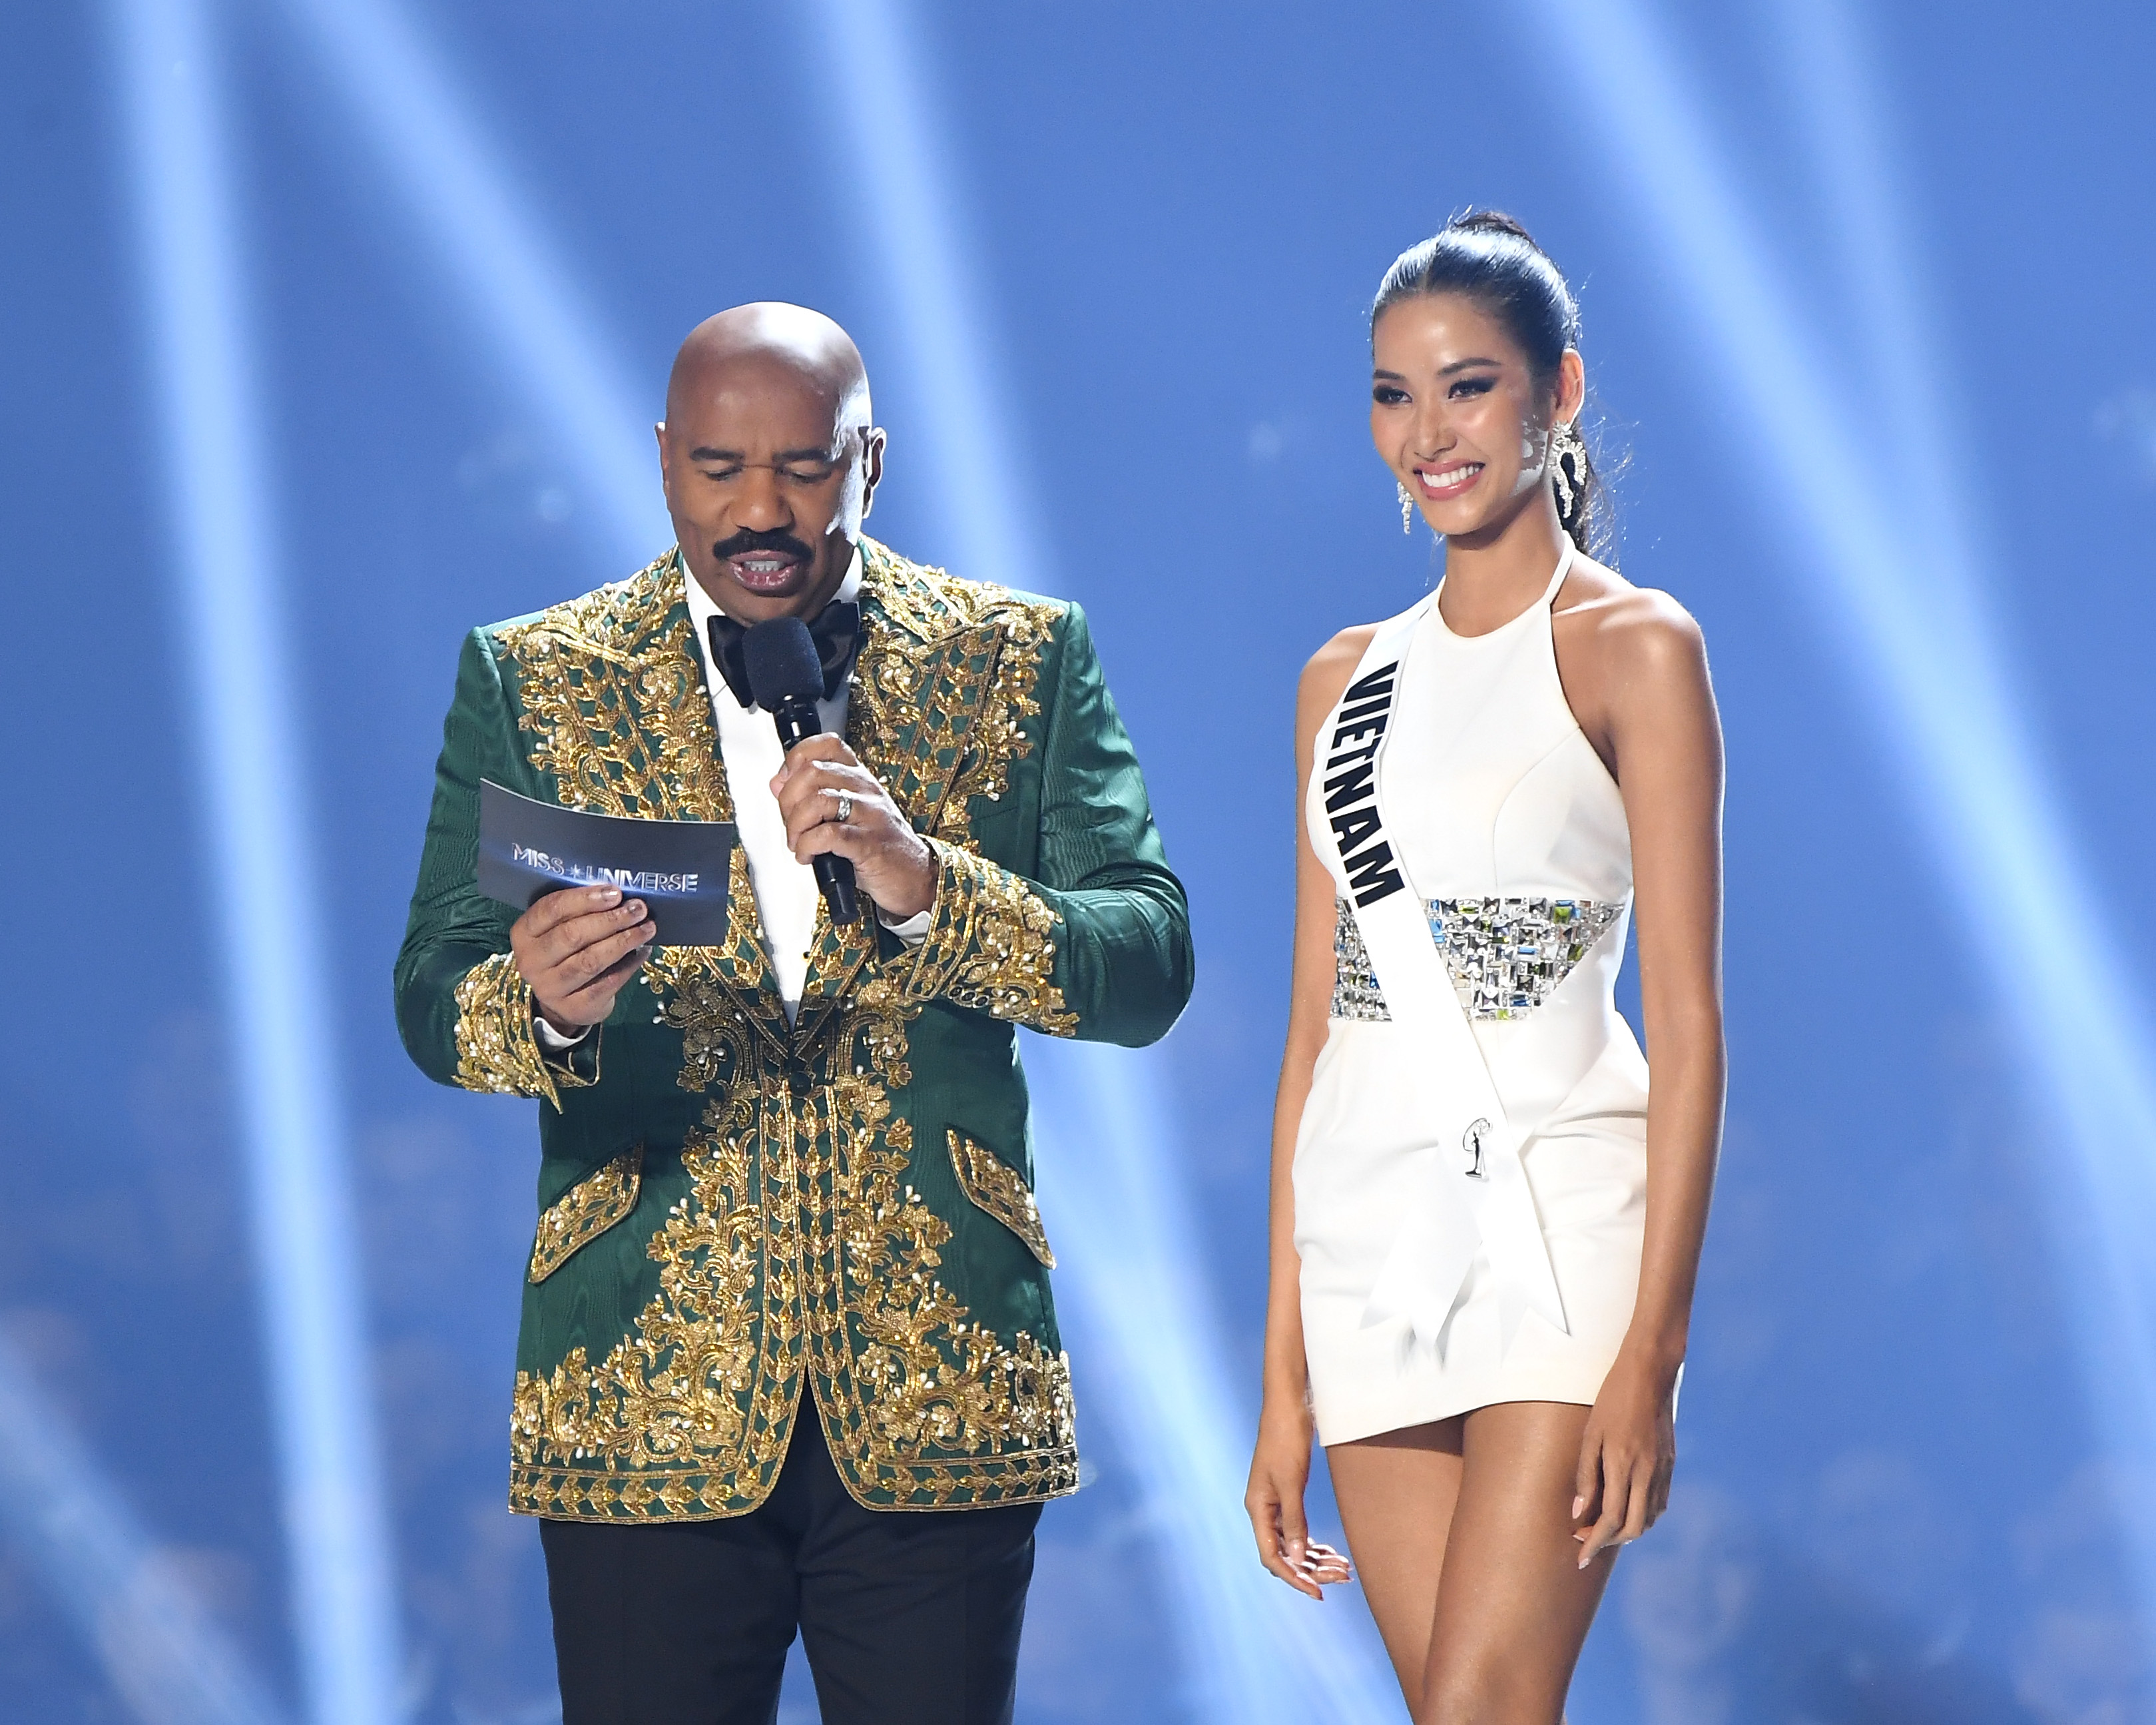 Steve Harvey and Miss Vietnam Hoang Thuy speak on stage at the 2019 Miss Universe Pageant at Tyler Perry Studios on December 08, 2019 in Atlanta, Georgia. Photo: AFP